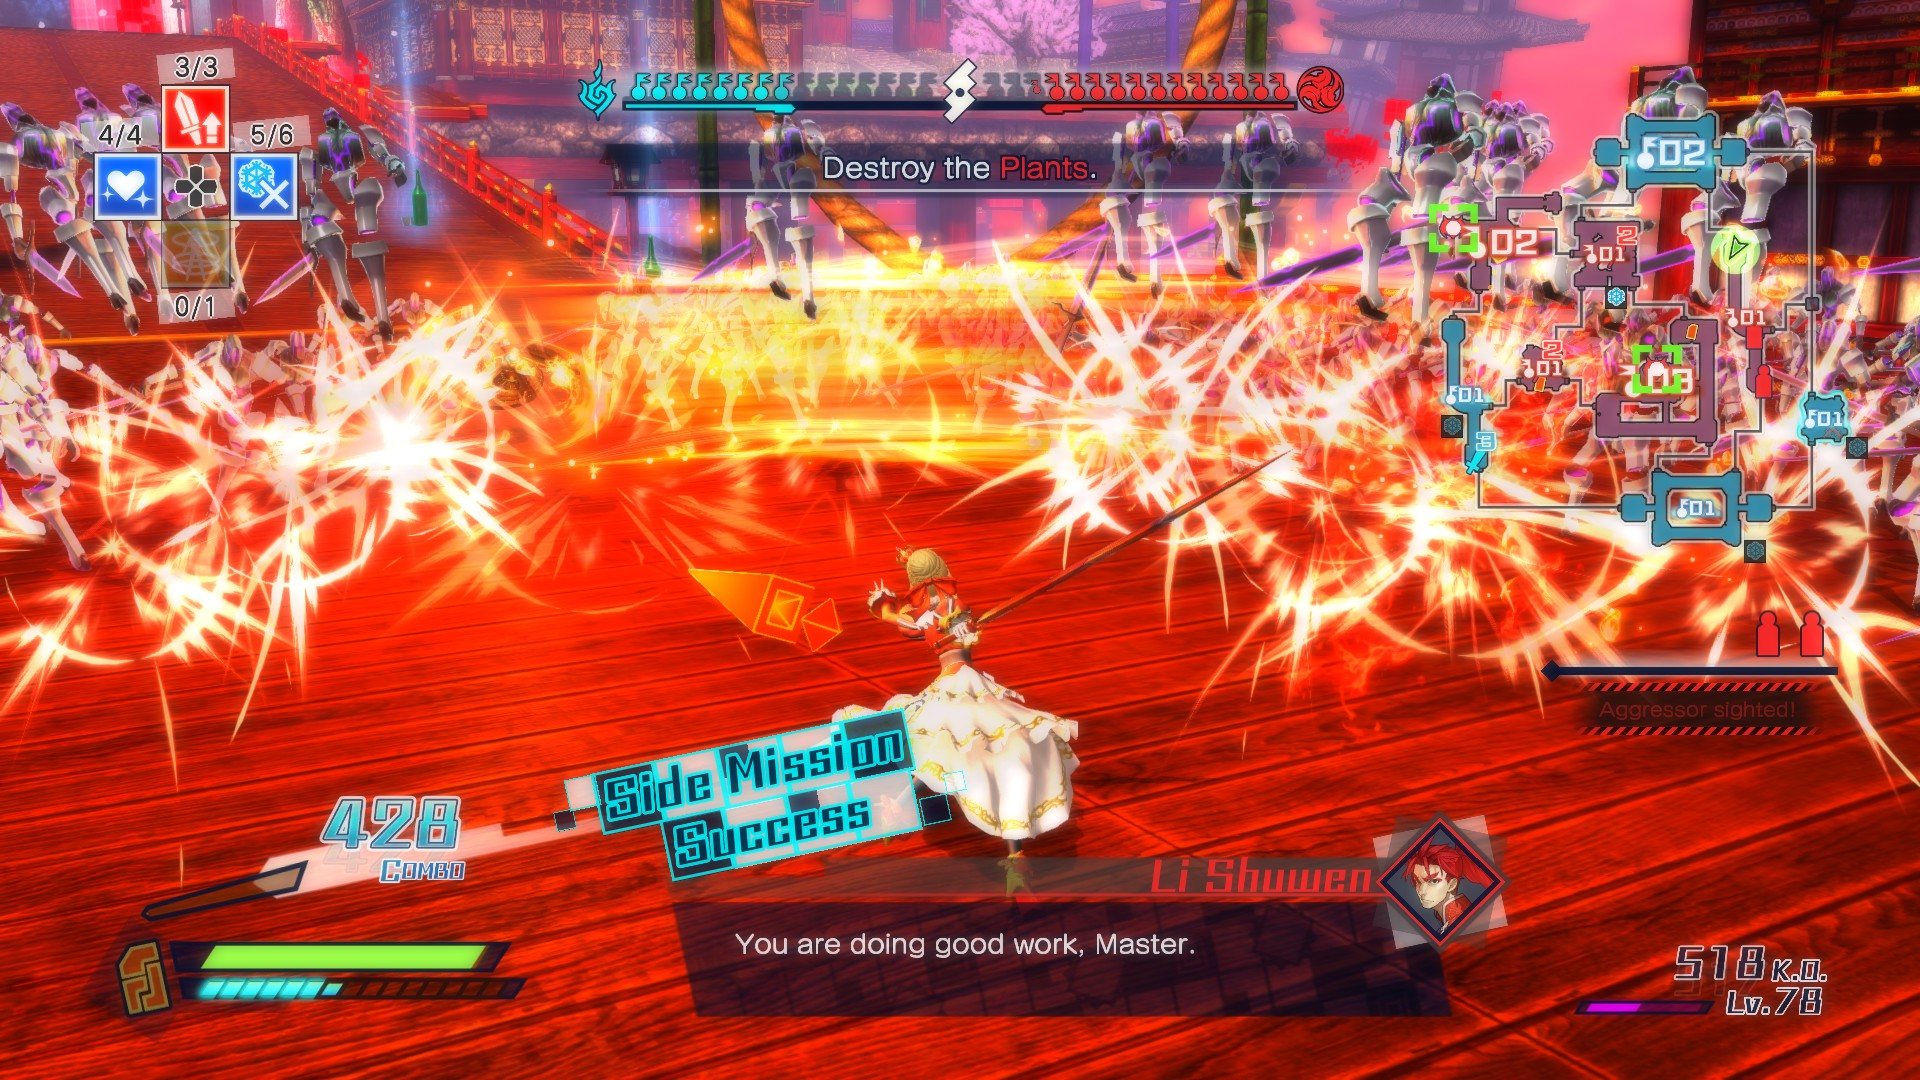 download fate/extella the umbral star-codex cracked full version singlelink iso rar multi language free for pc